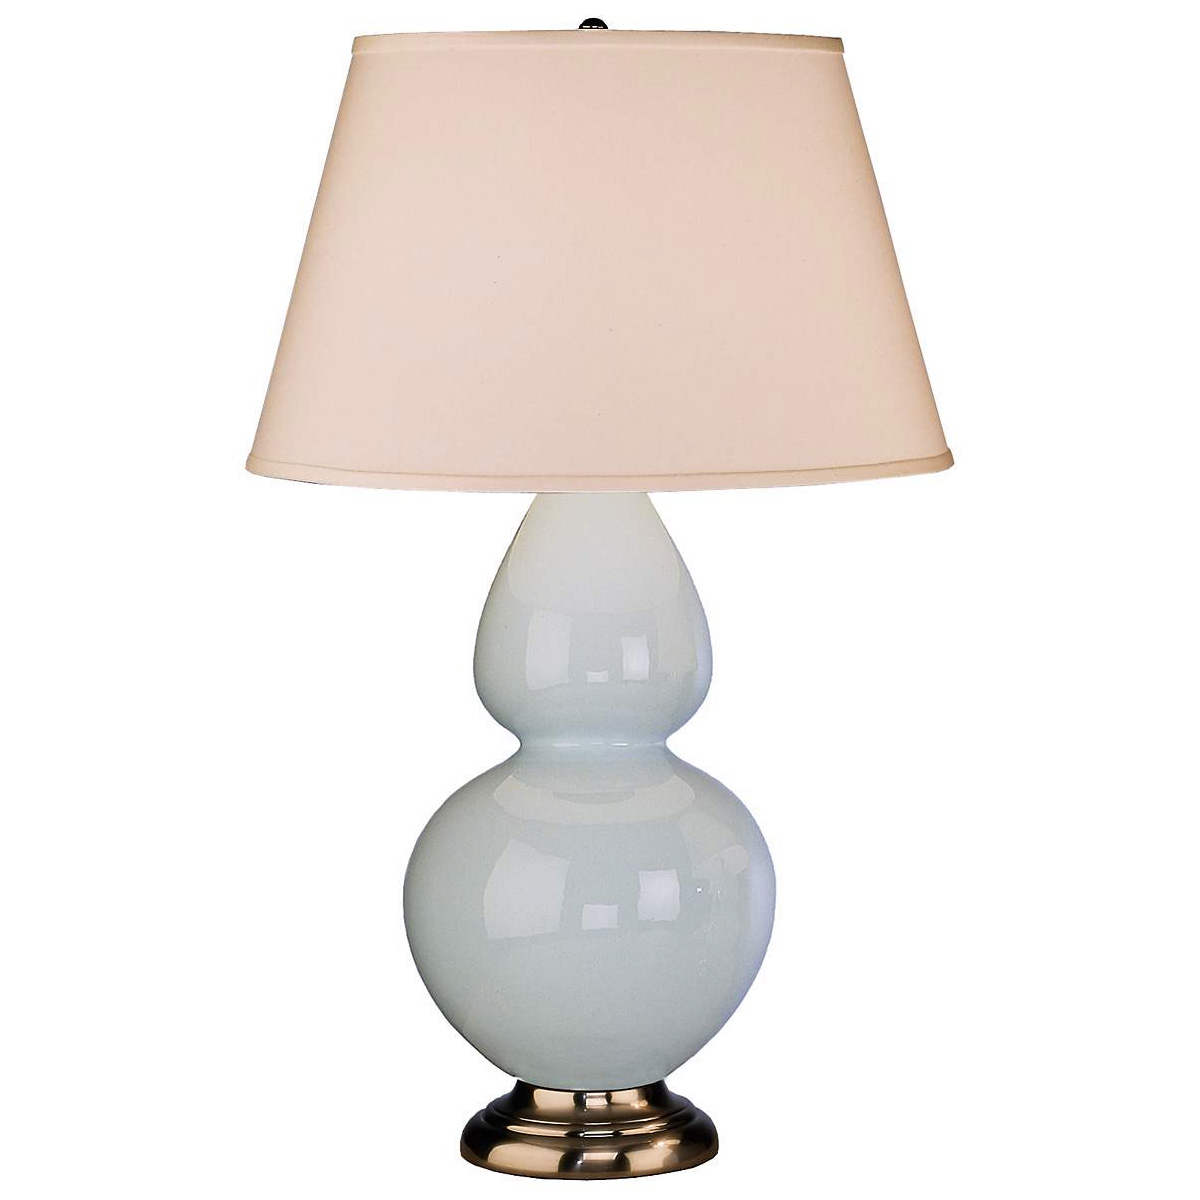 Robert Abbey Double Gourd Ceramic Table Lamp